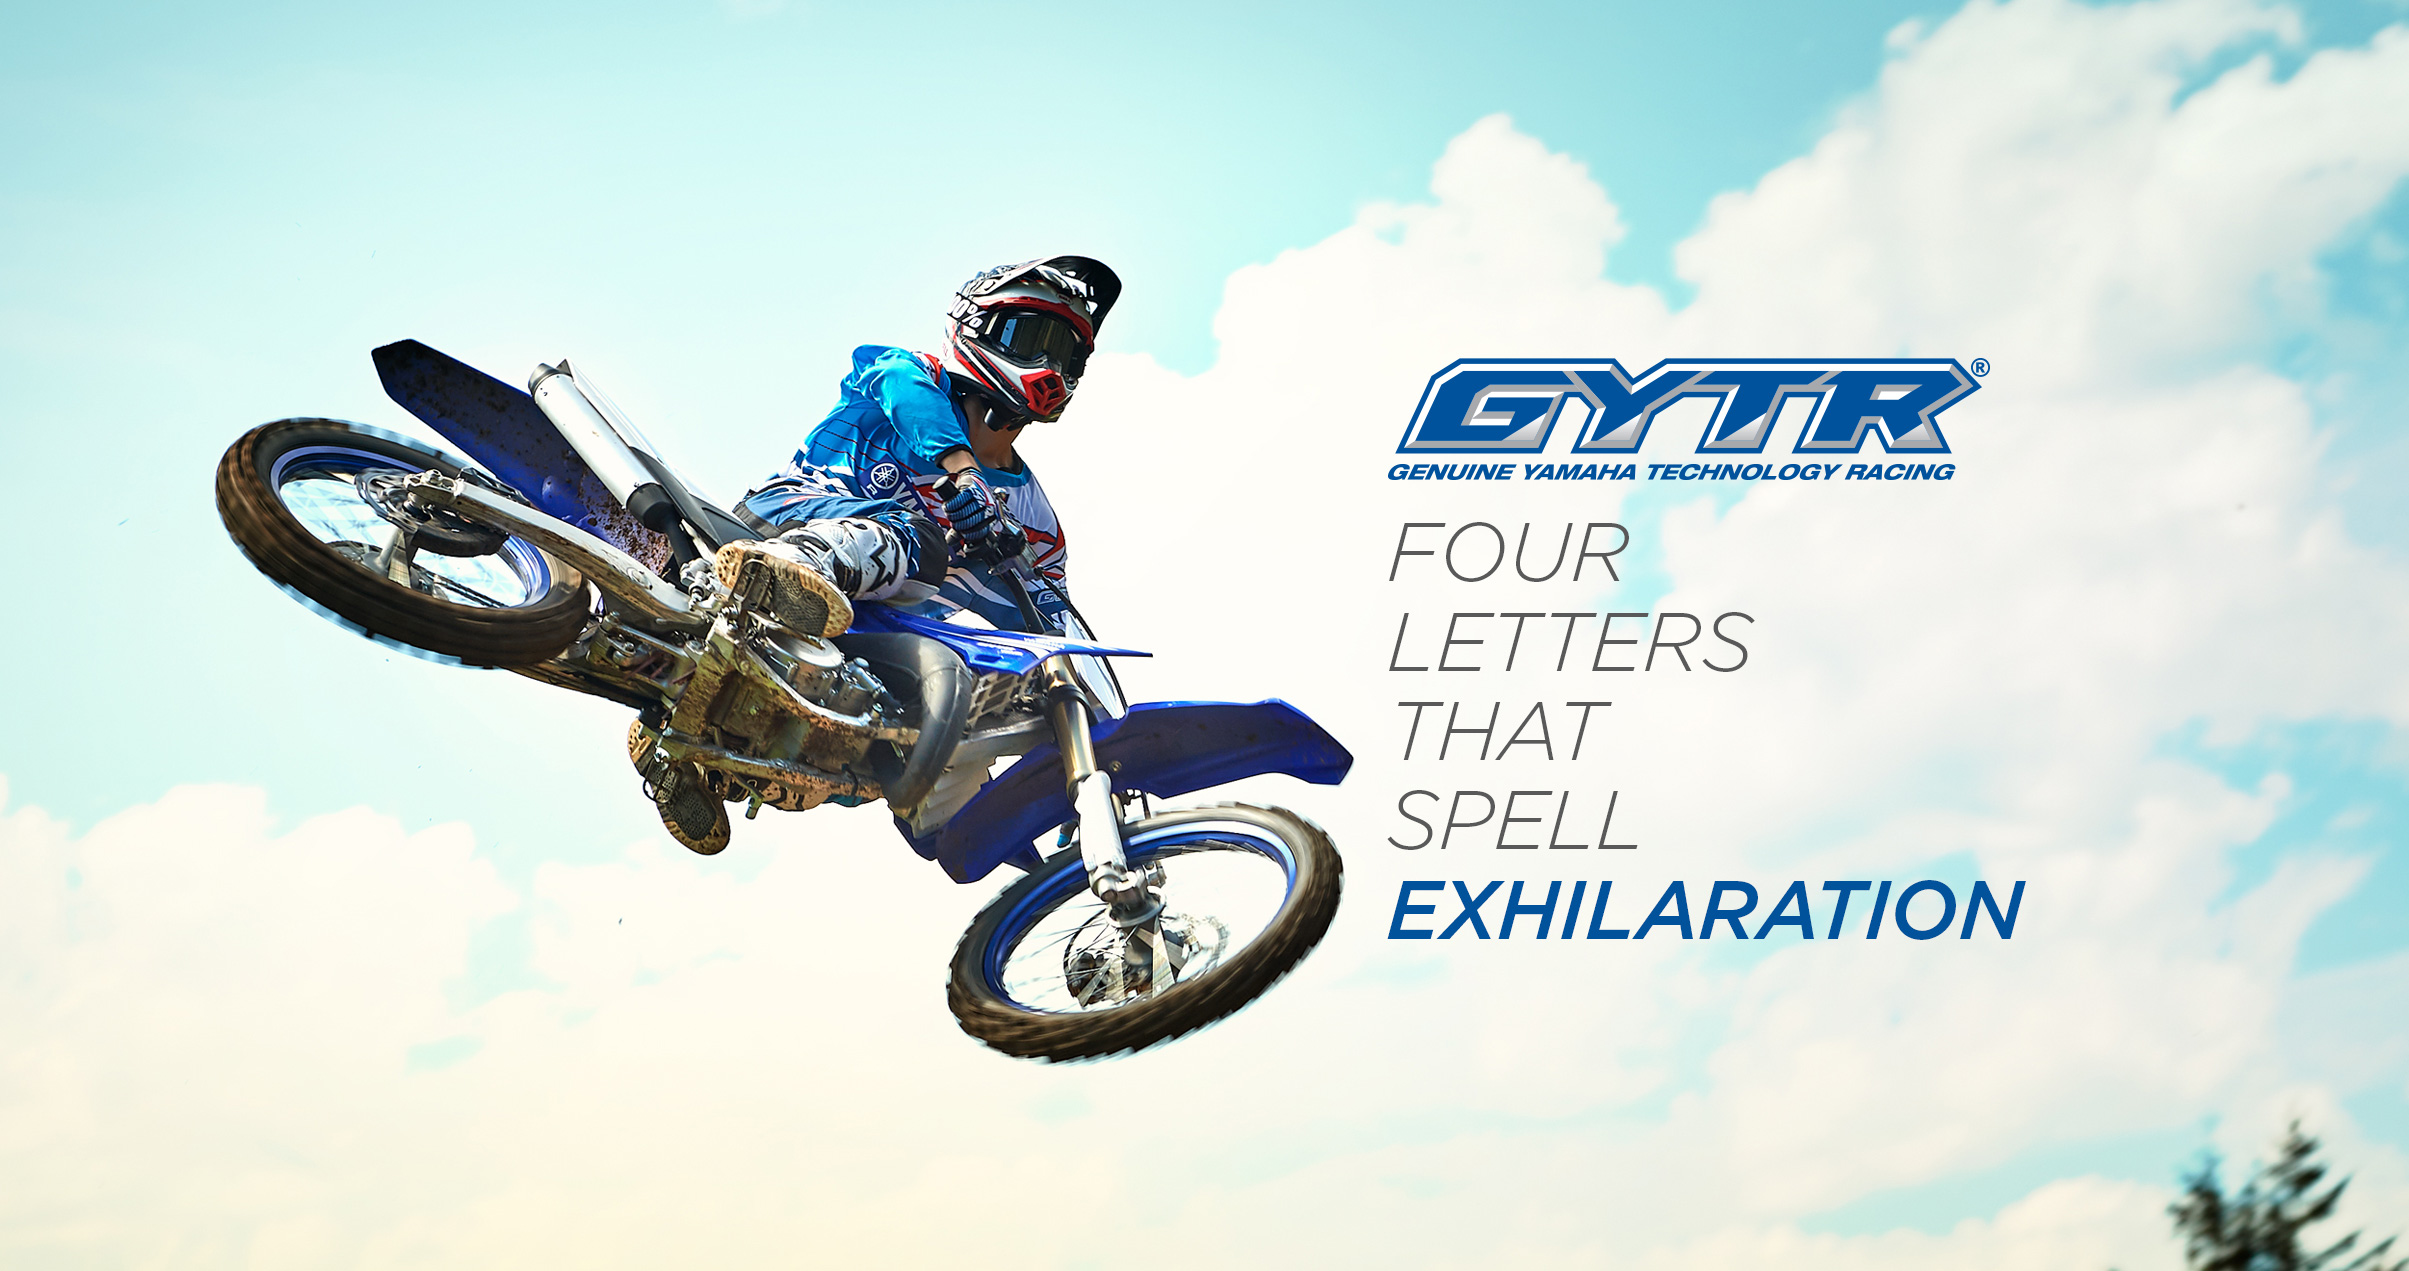 hight resolution of genuine yamaha technology racing gytr performance products